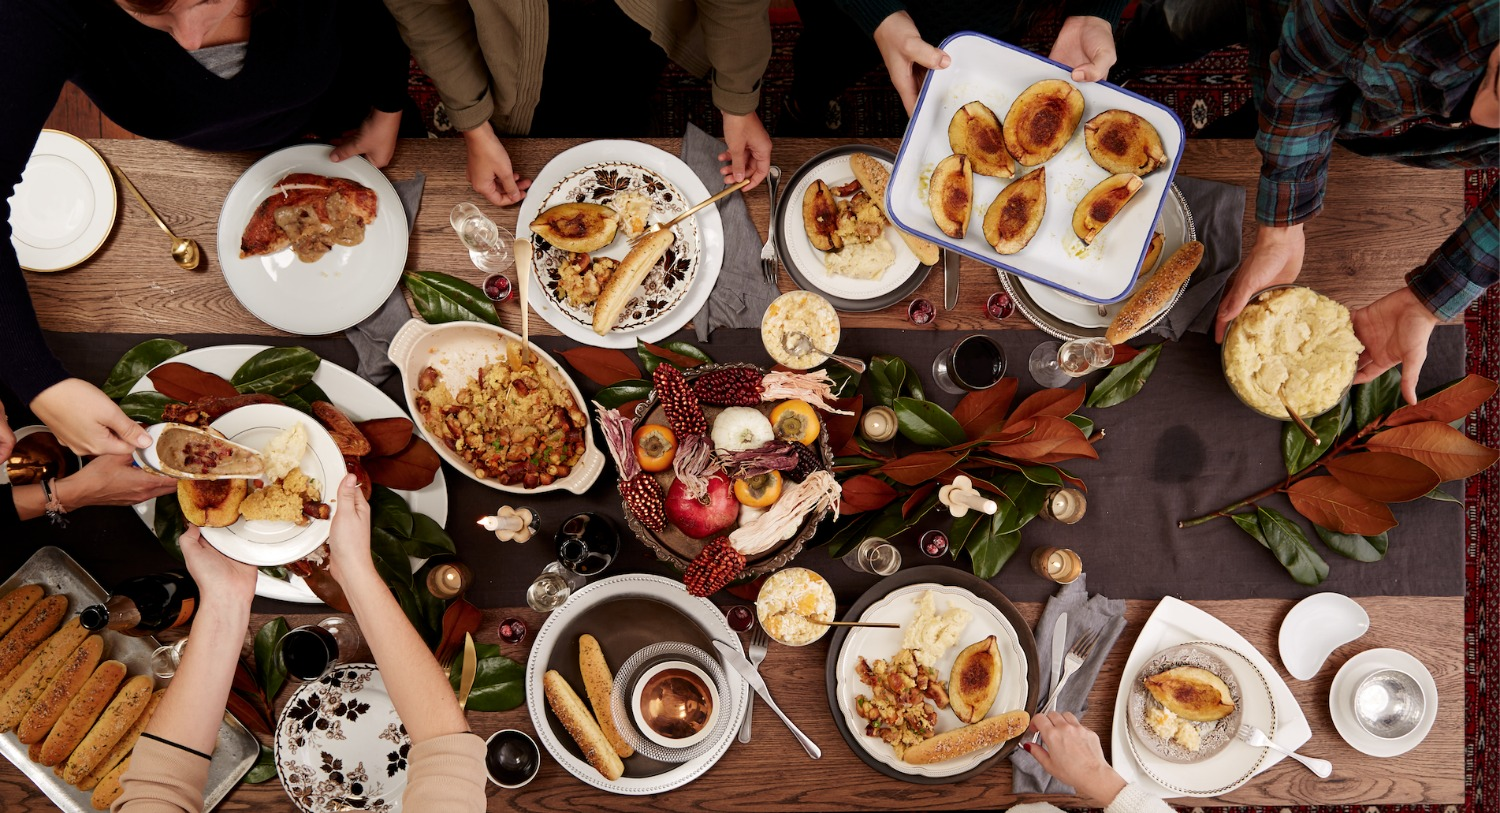 PACE YOURSELF FOR THANKSGIVING DINNER